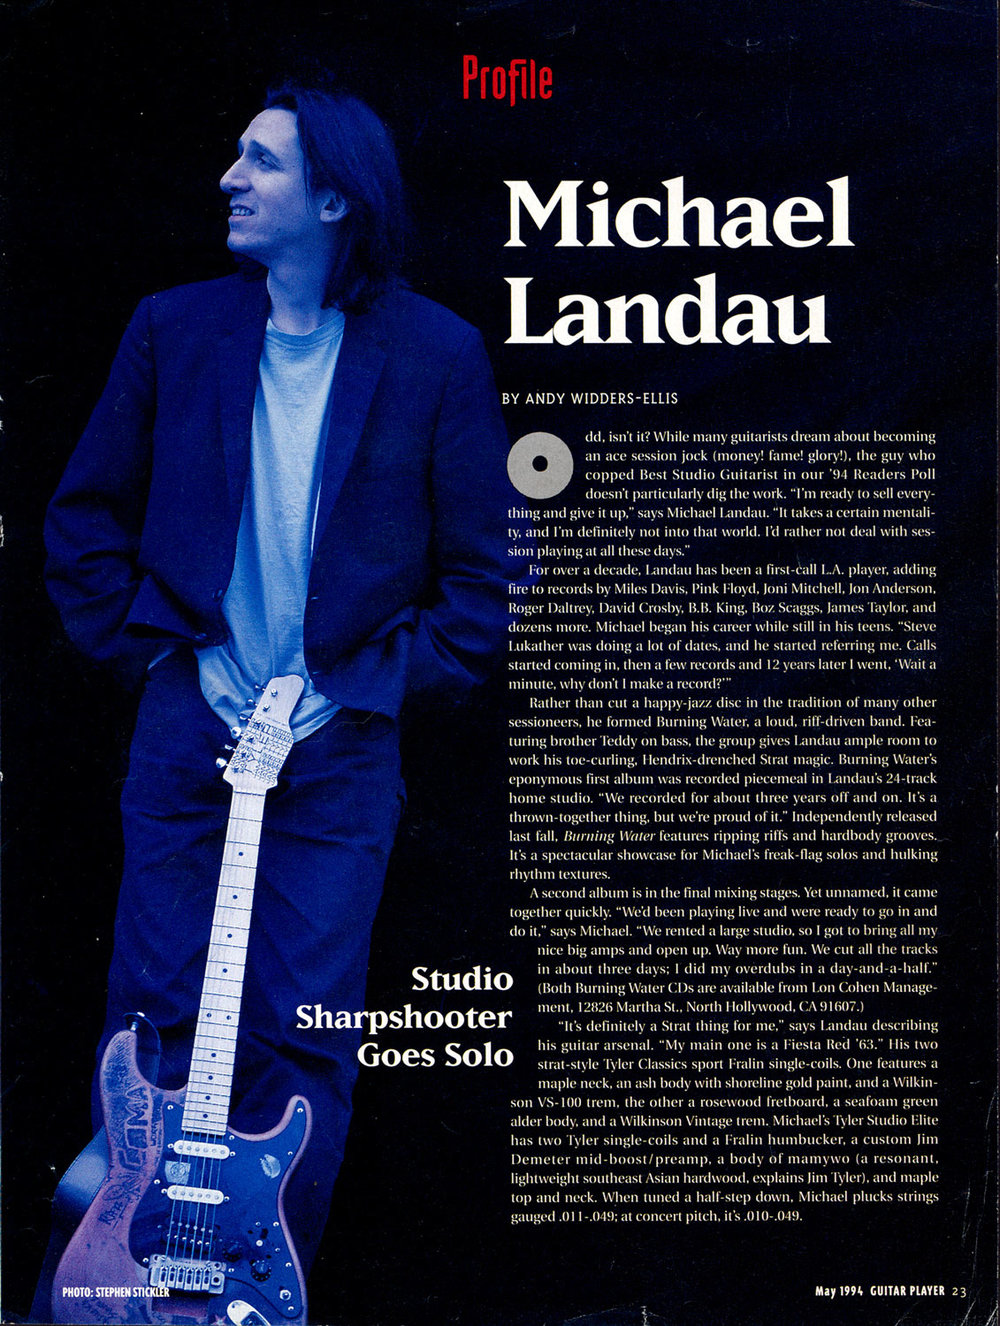 Copy of 1994 Guitar Player